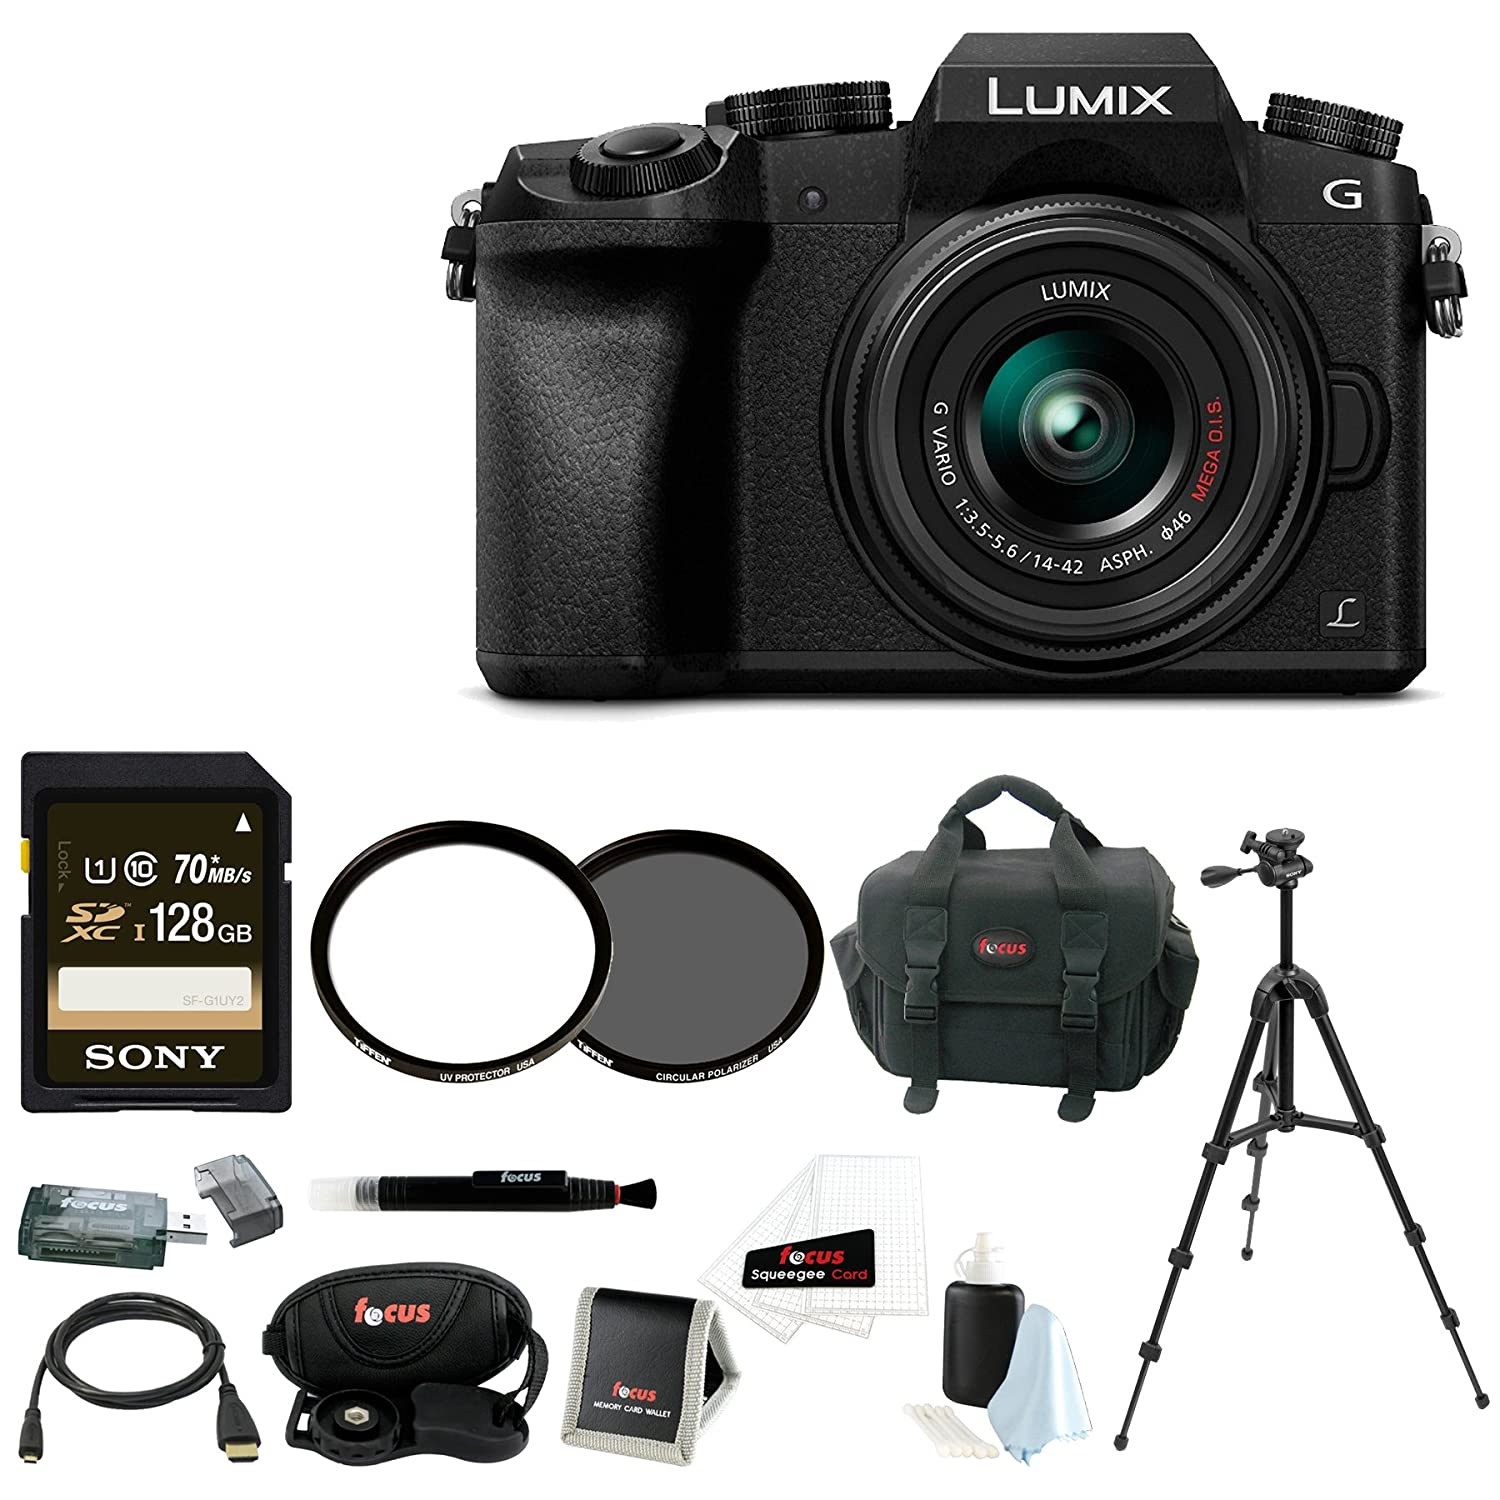 Panasonic LUMIX G7 Camera with 14-42mm Lens (Black) + Sony 128GB SDXC + Tiffen 42MM UV & CP Filters + Accessory Bag